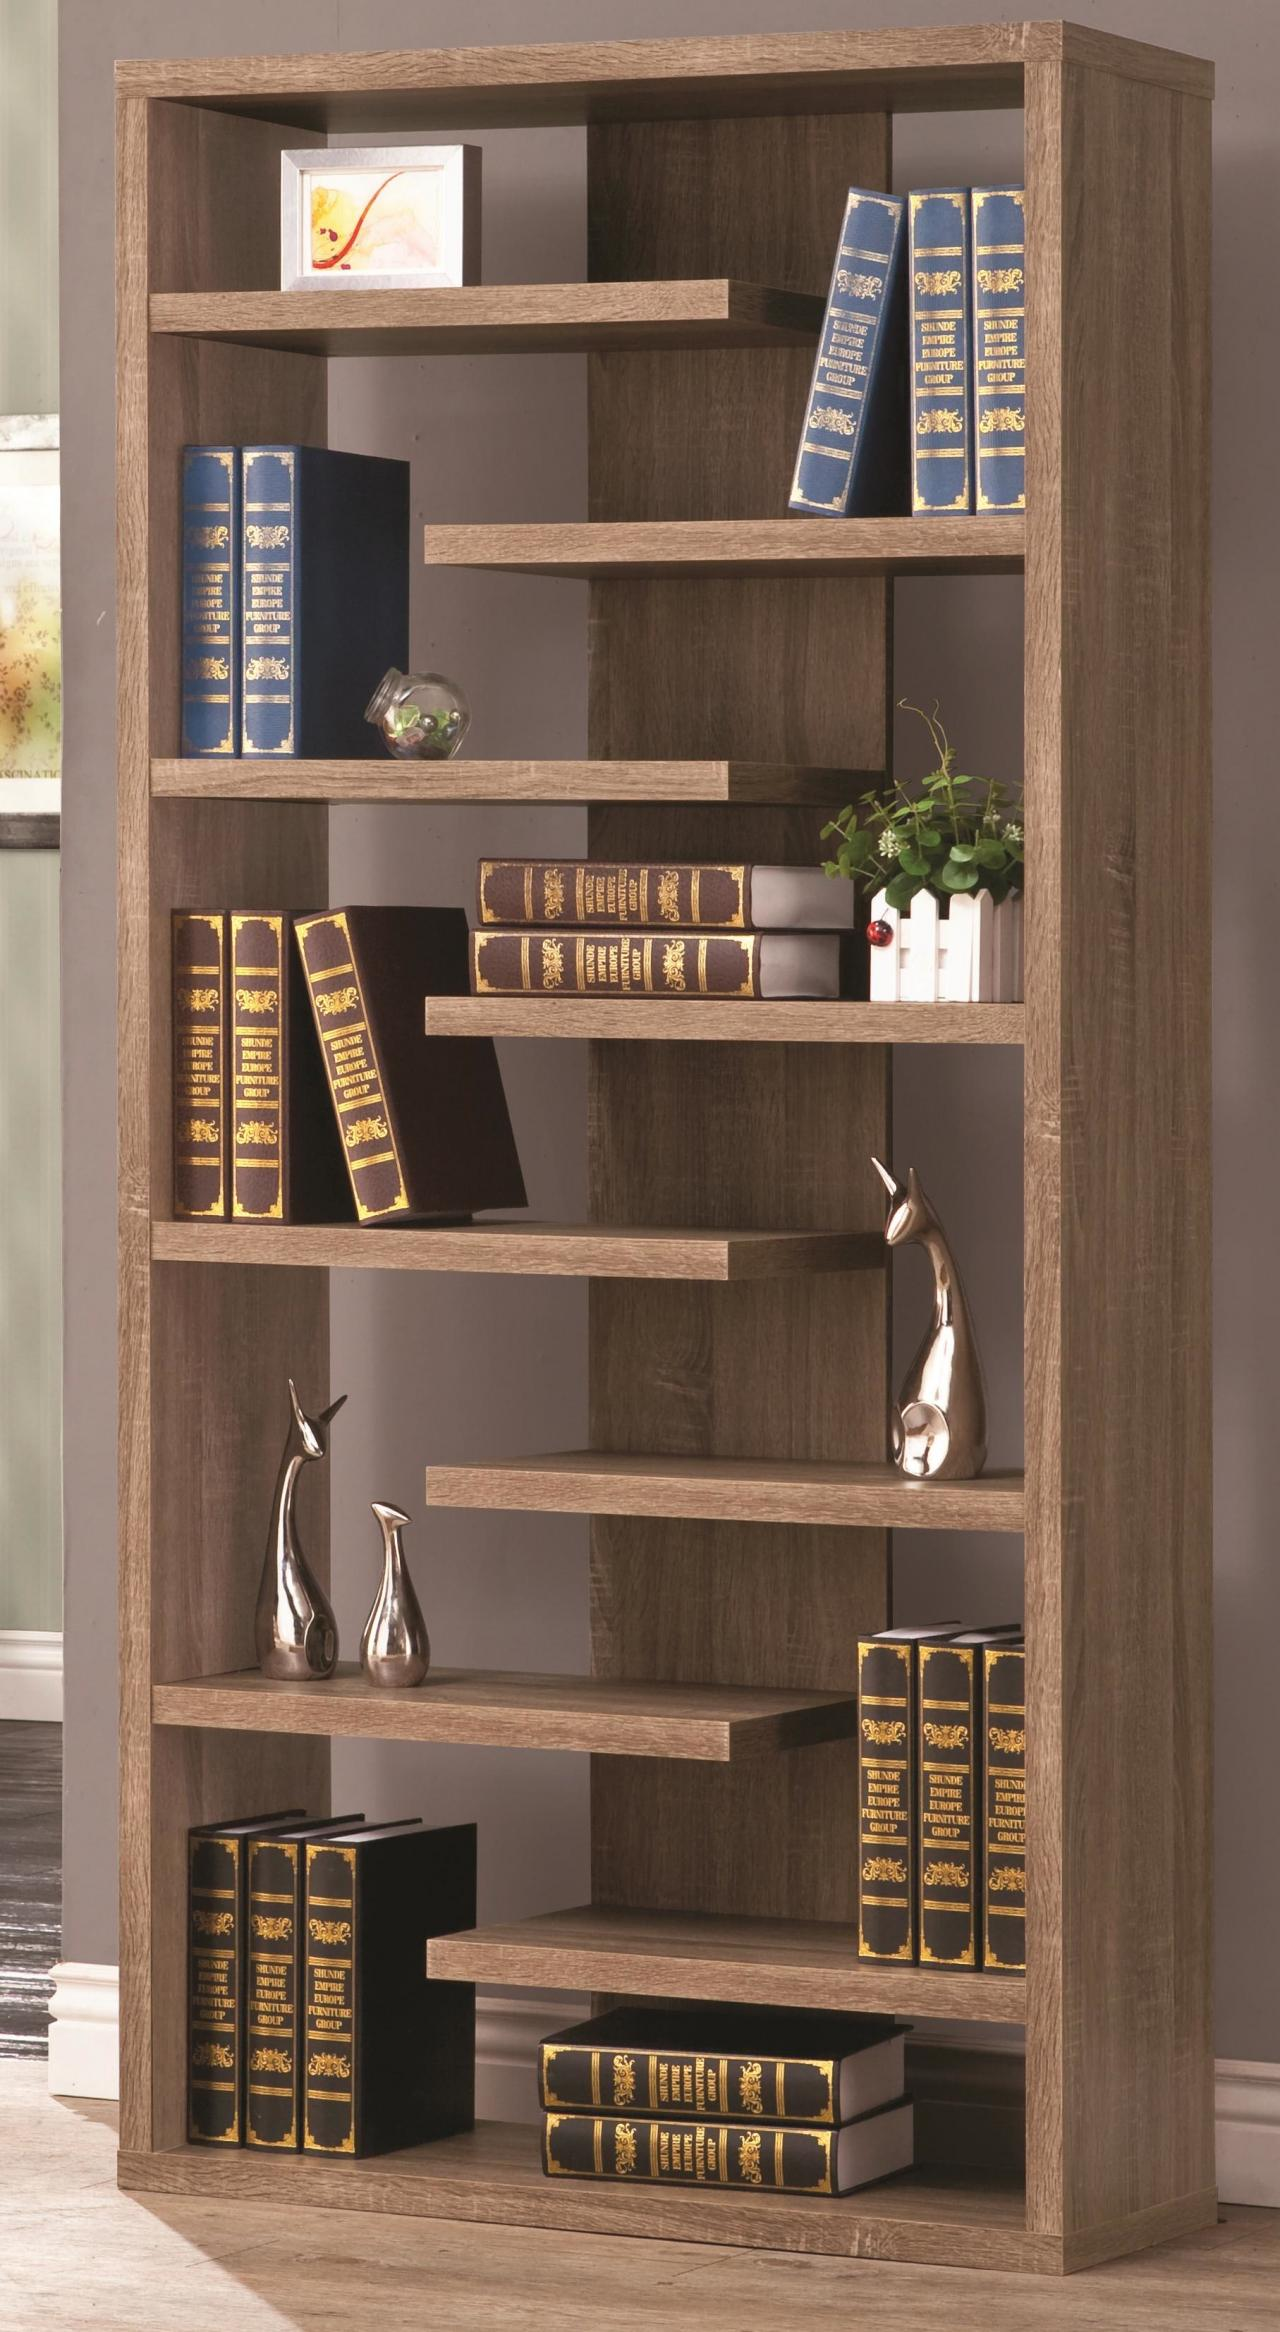 Rustic Wood Cool Retail Bookcase Floating Shelves Store Unique Displays